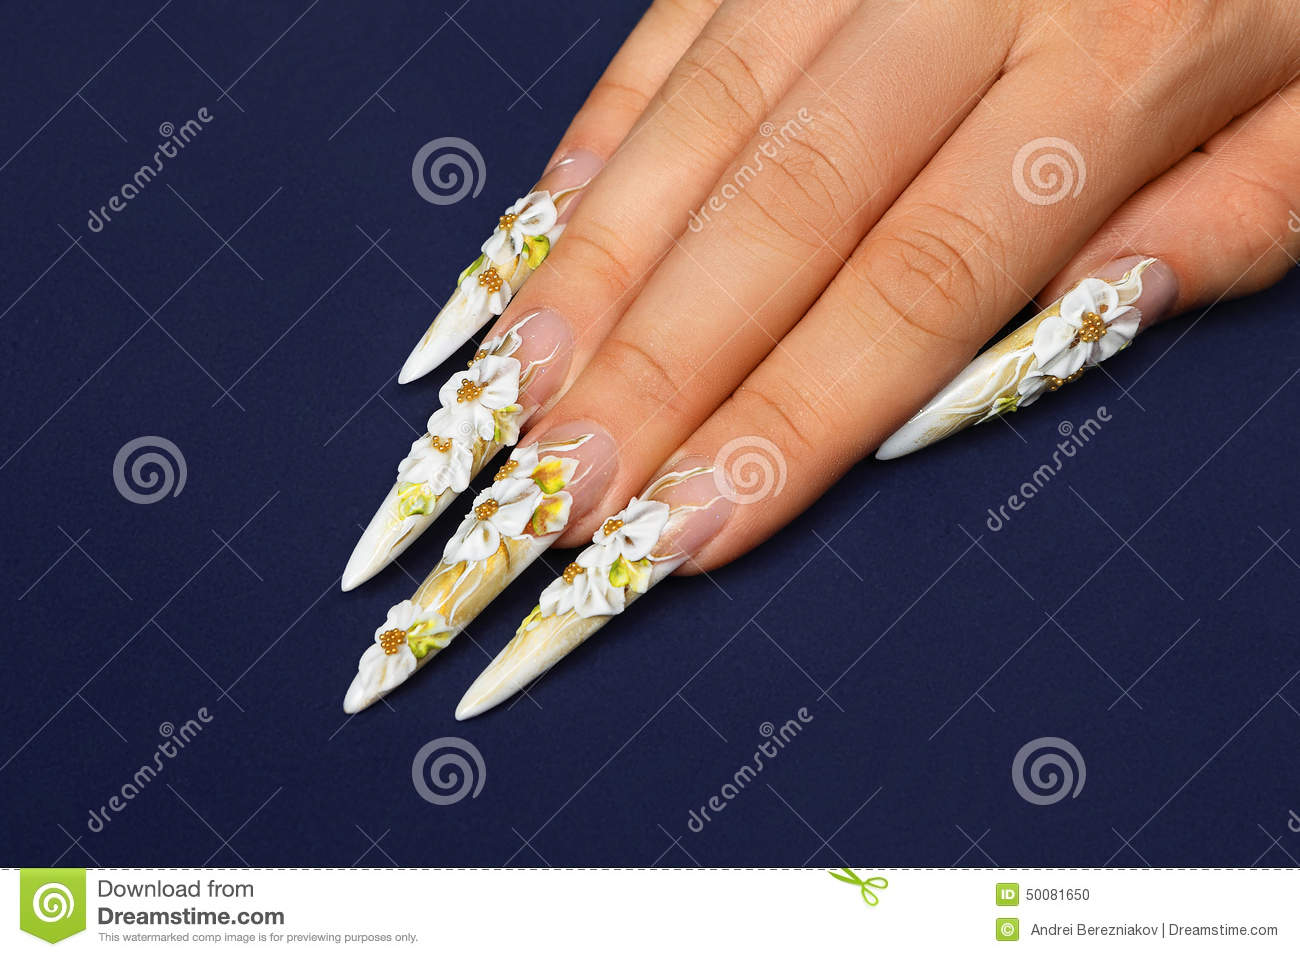 Wedding Nails Design Stock Photo Image Of Creative 50081650